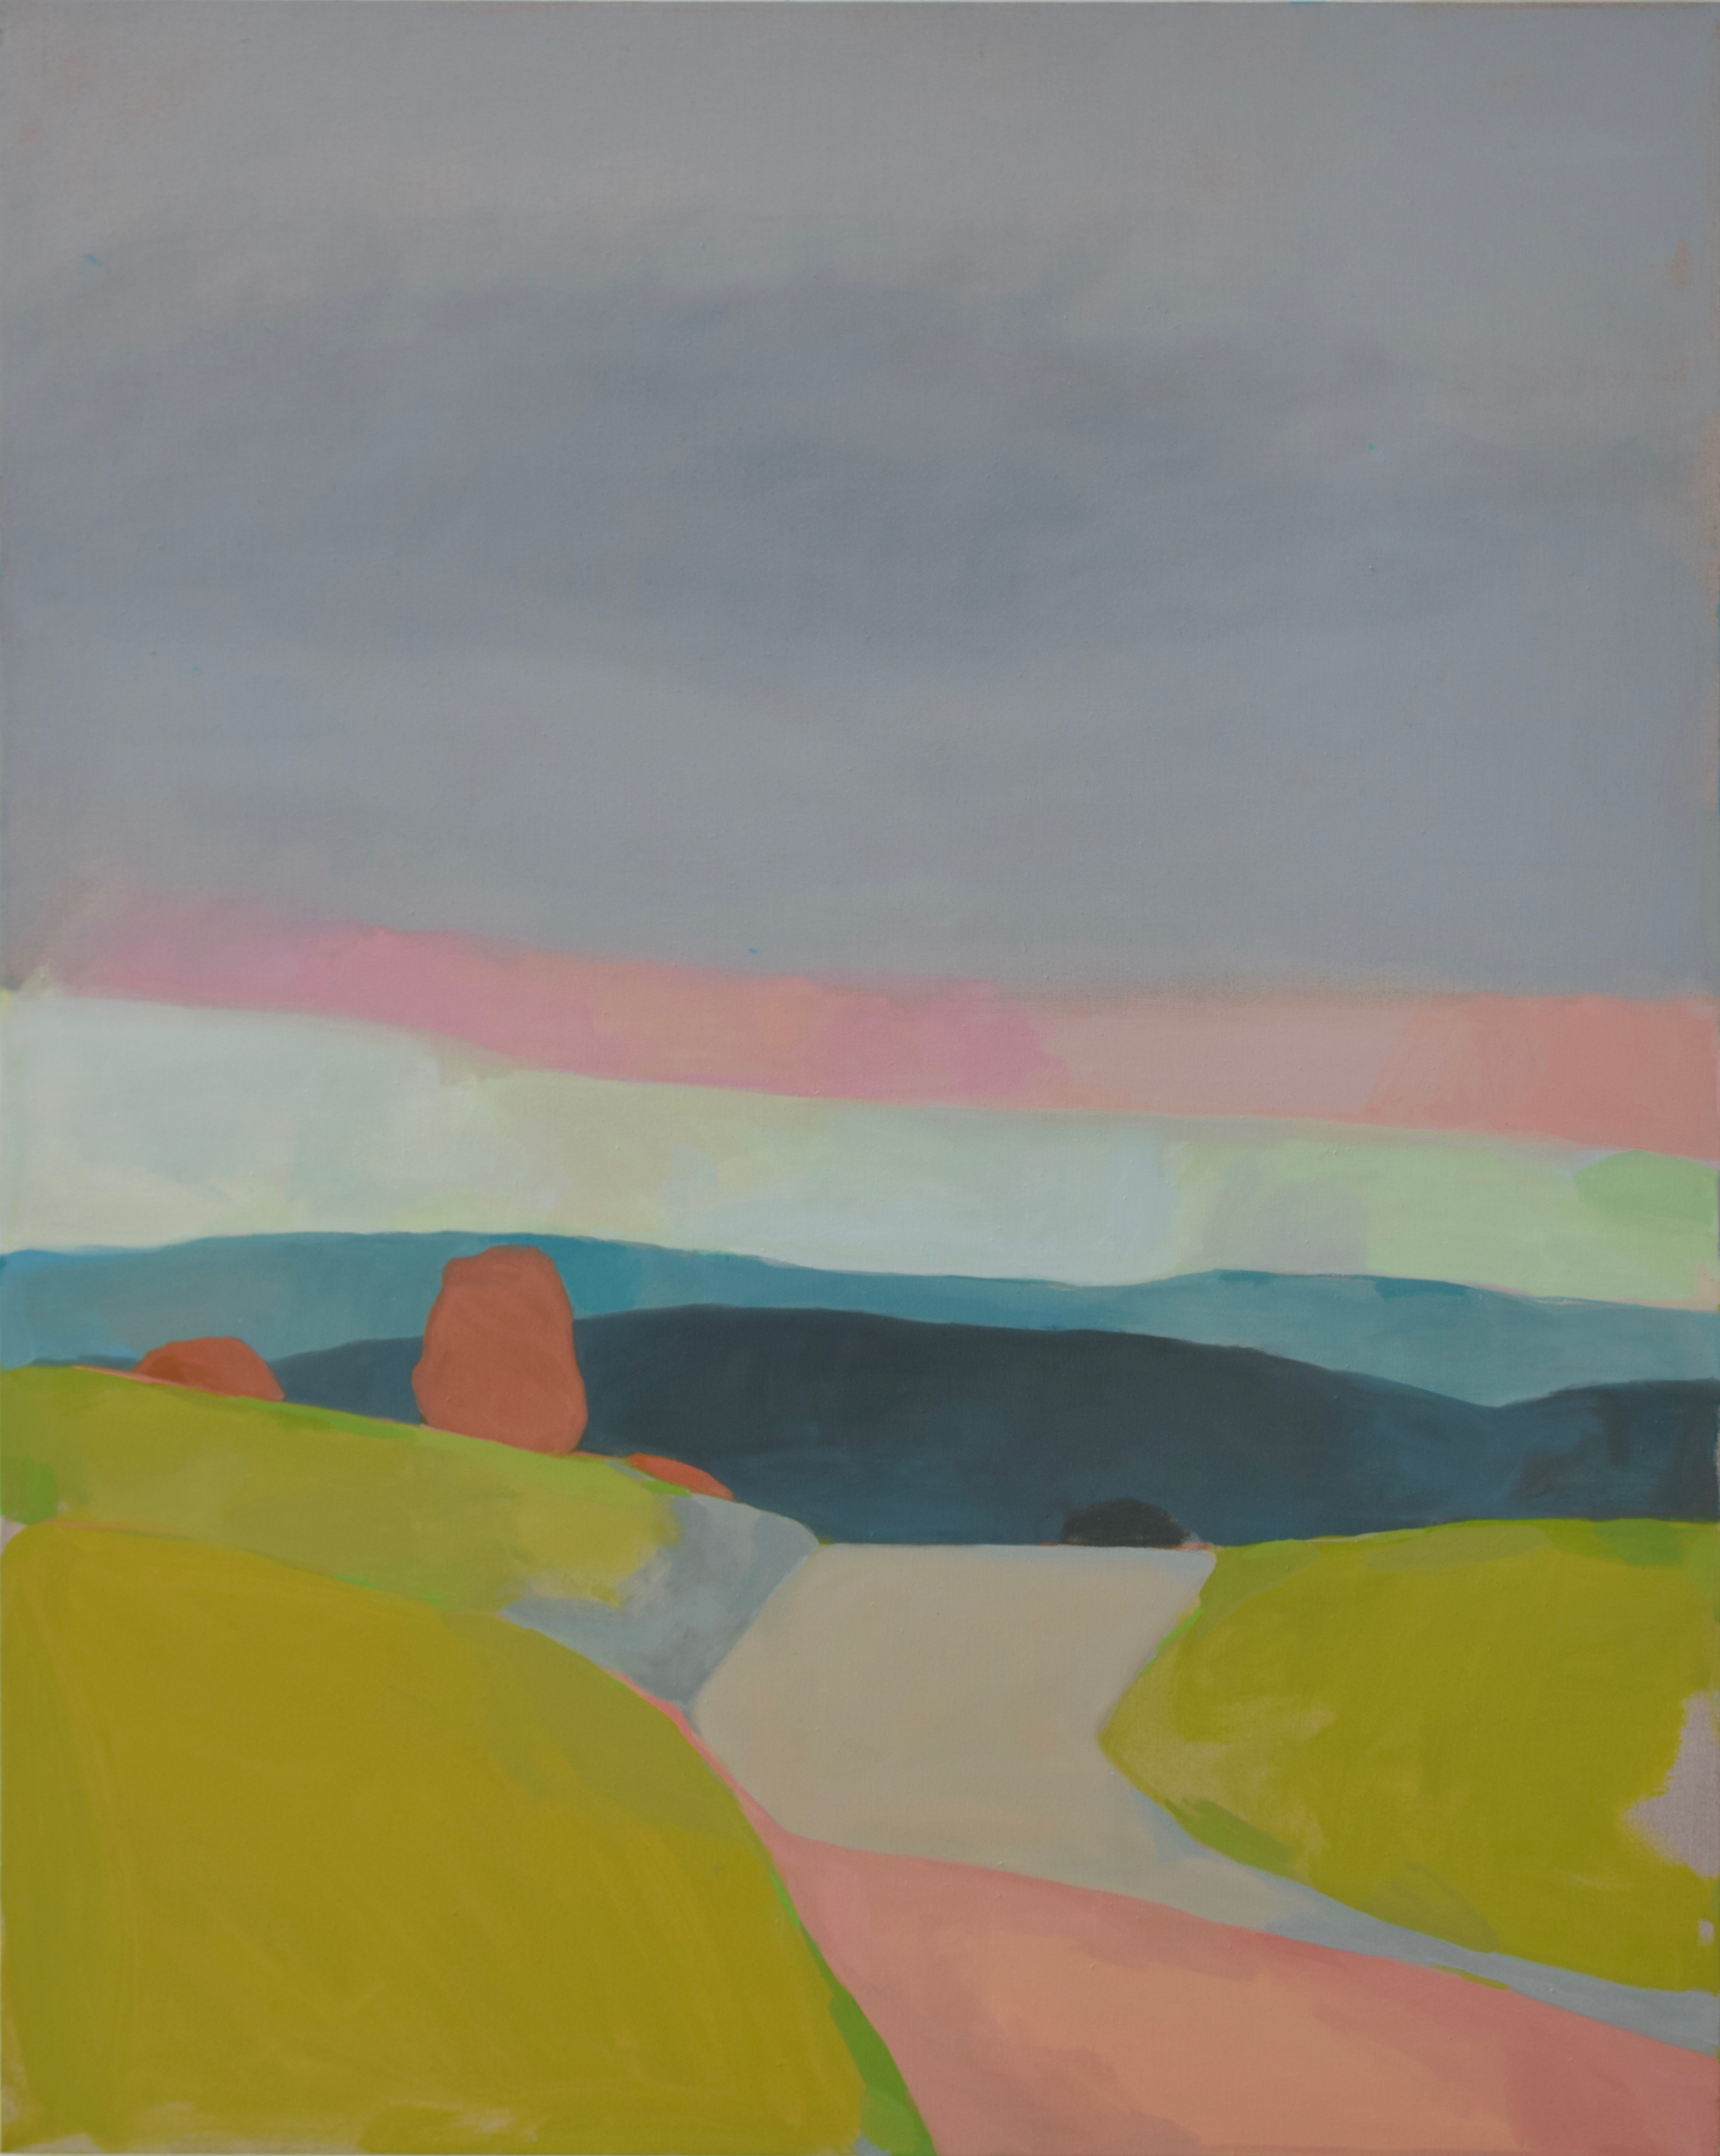 Karen Smidth - MENDOCINO HILLS AT SUNDOWN - oil on linen